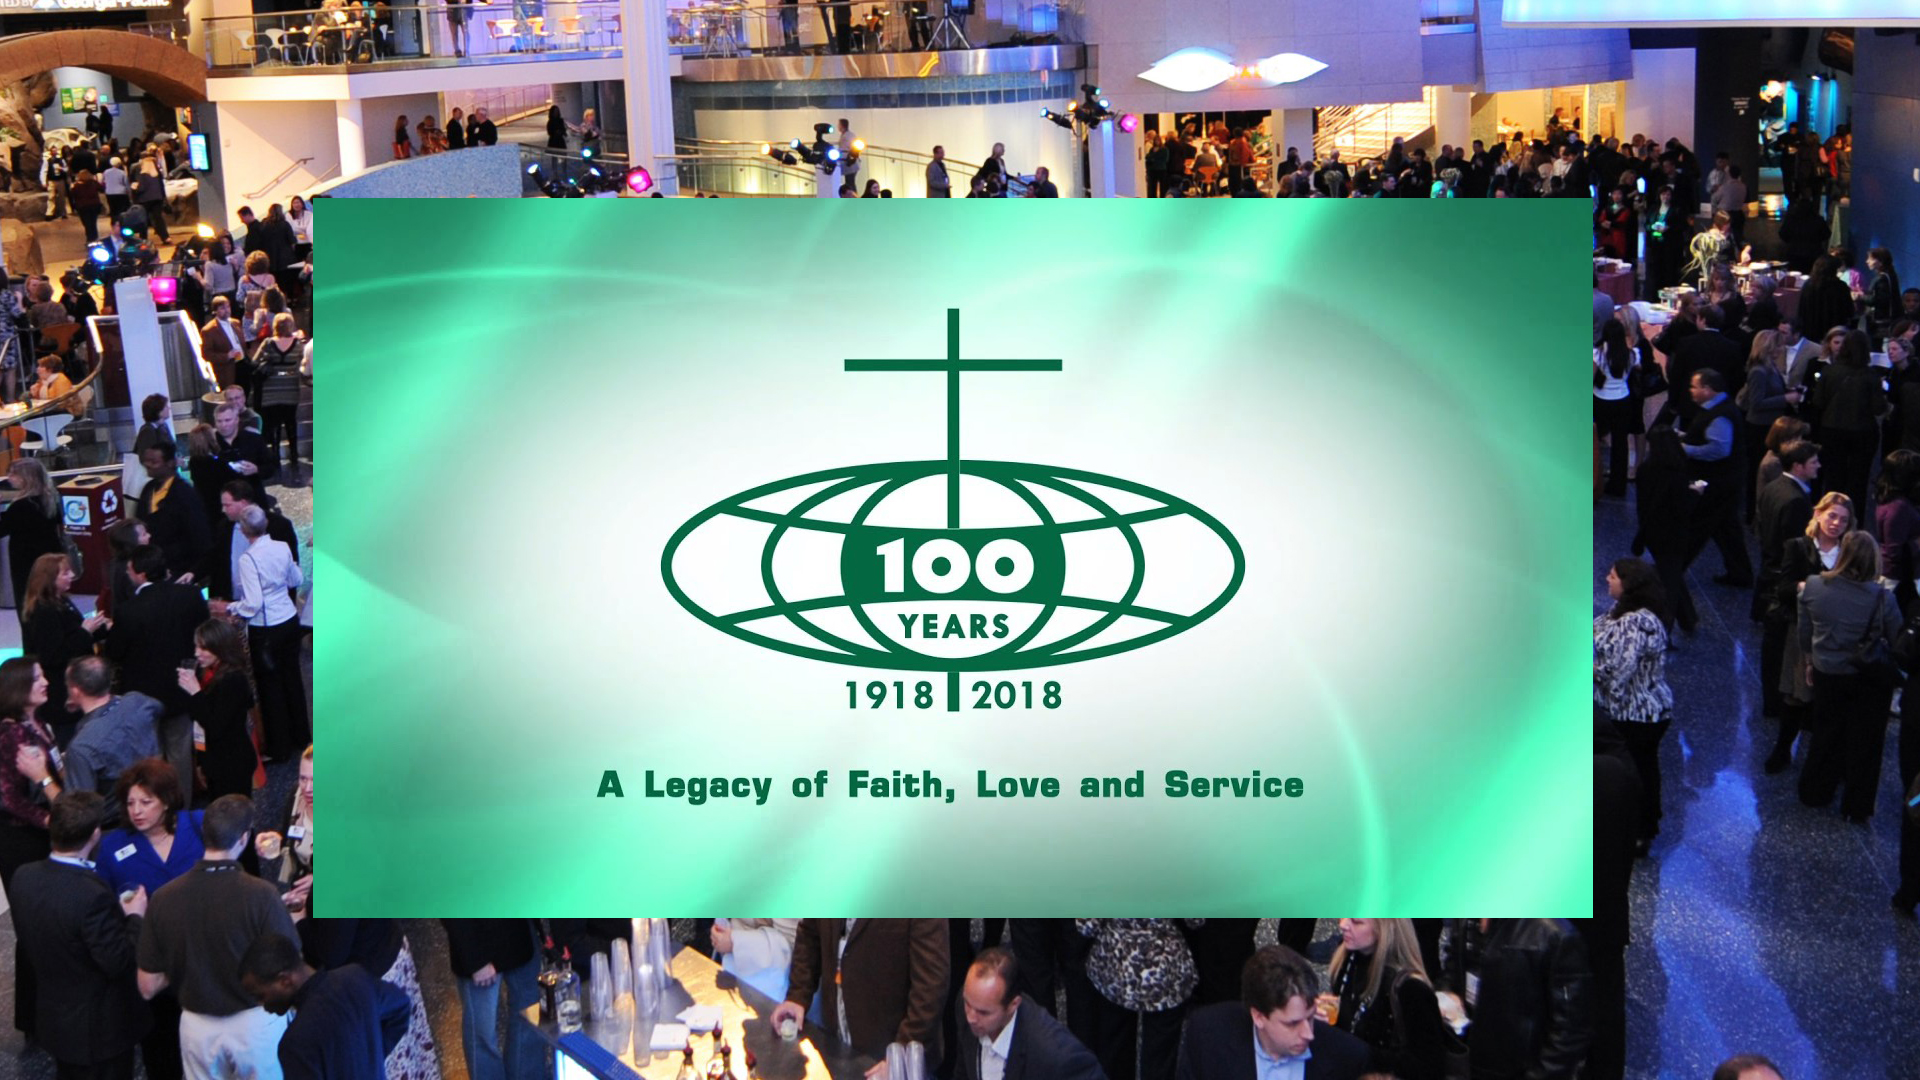 AMAA Sunday- 100th Anniversary Celebration